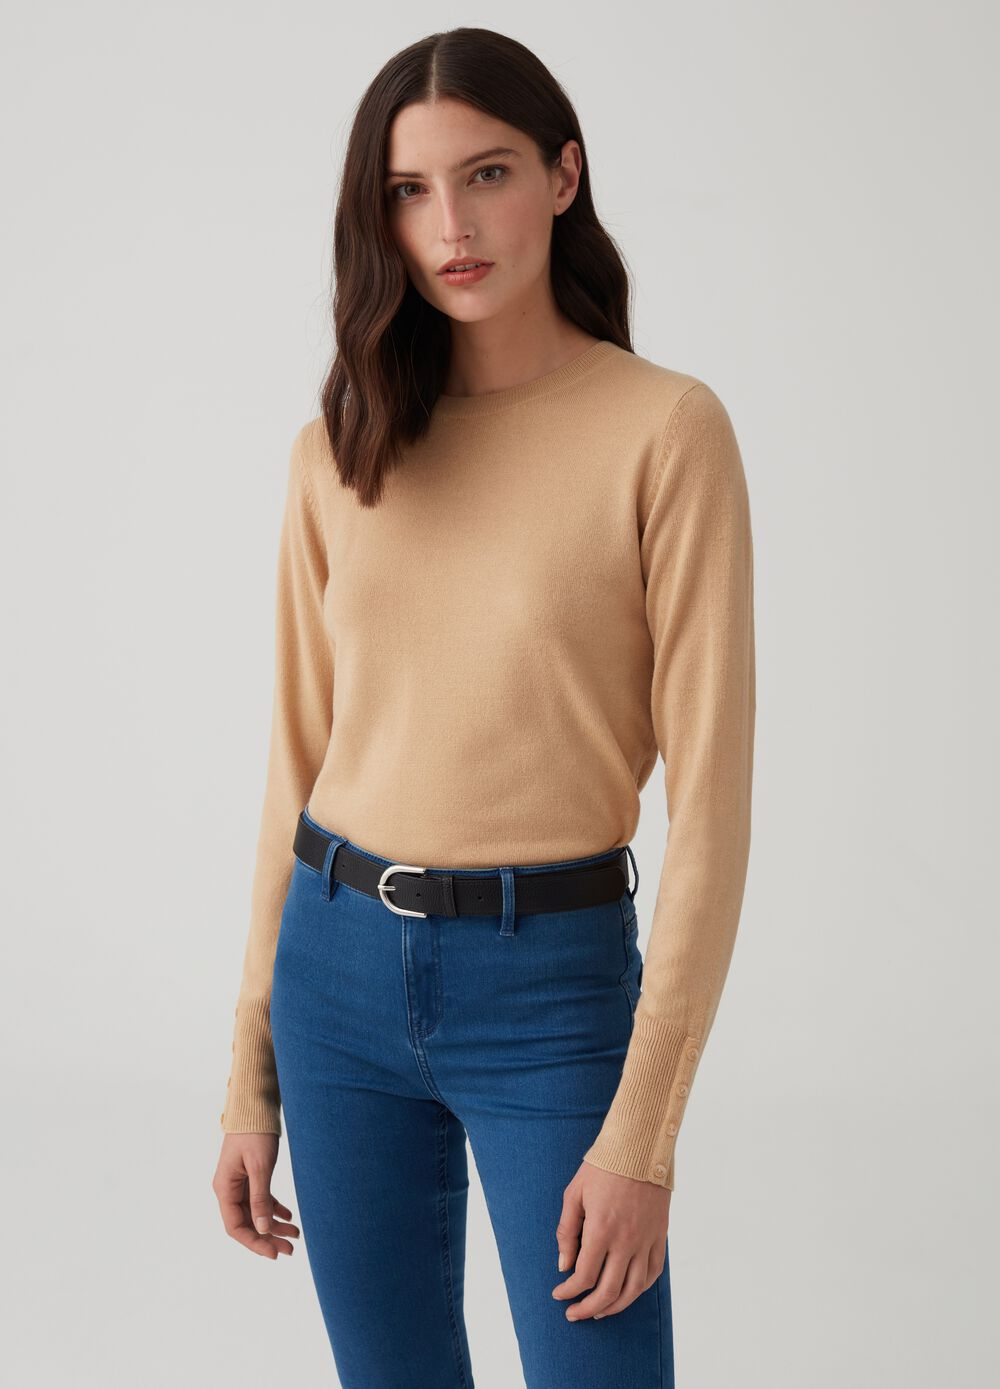 Knitted pullover with buttons on the cuffs